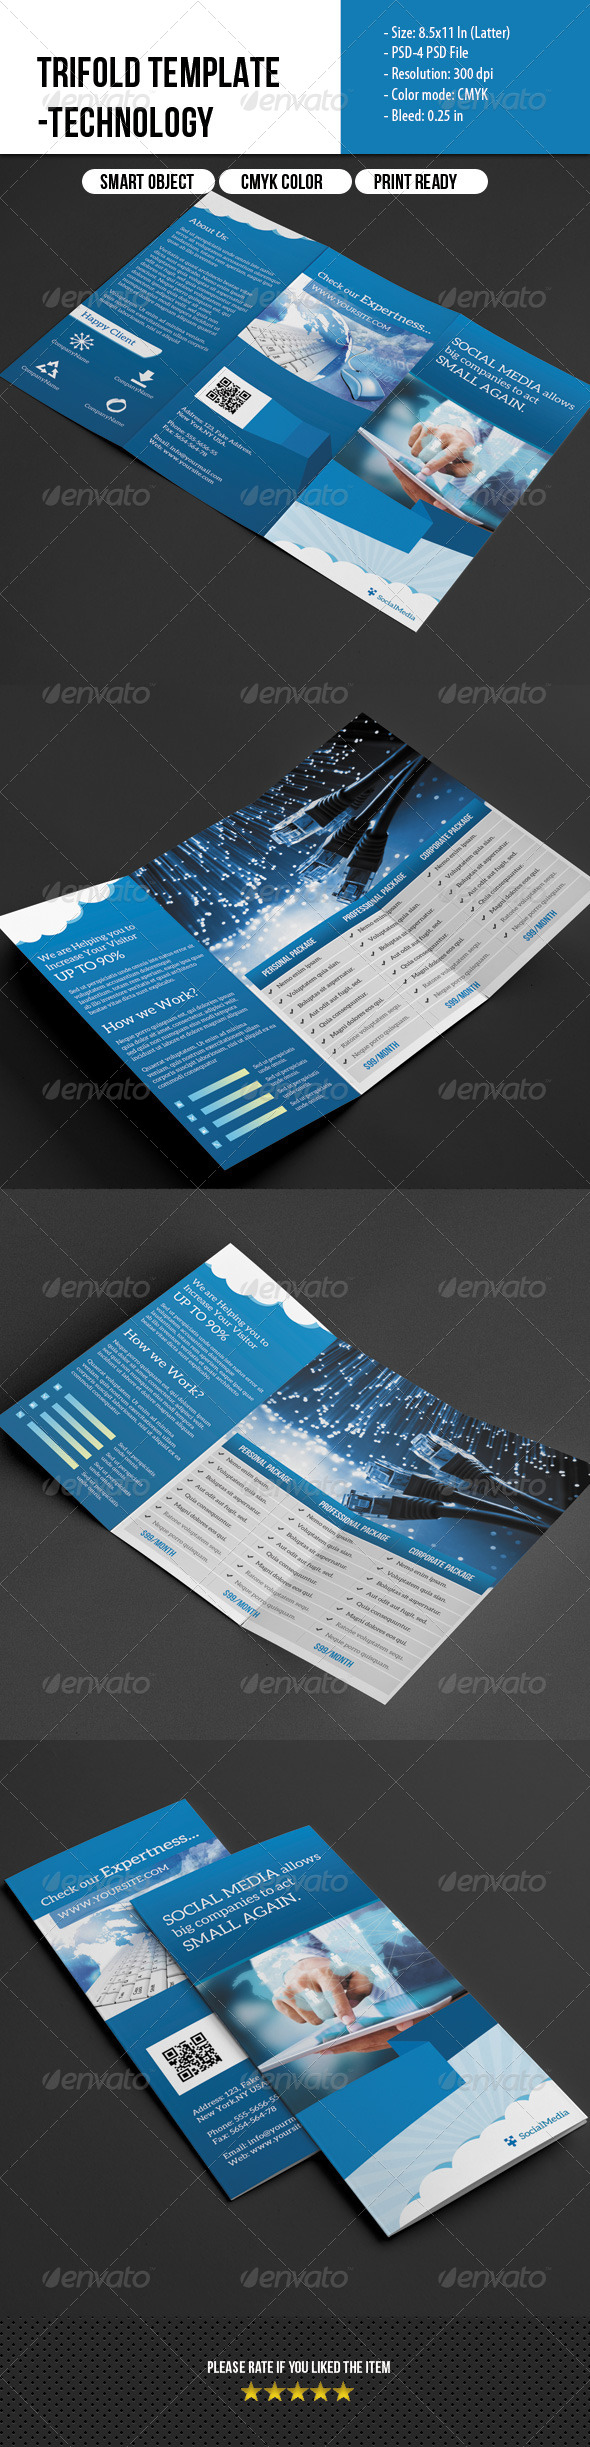 GraphicRiver Trifold Template- Social Media Marketing 7056052